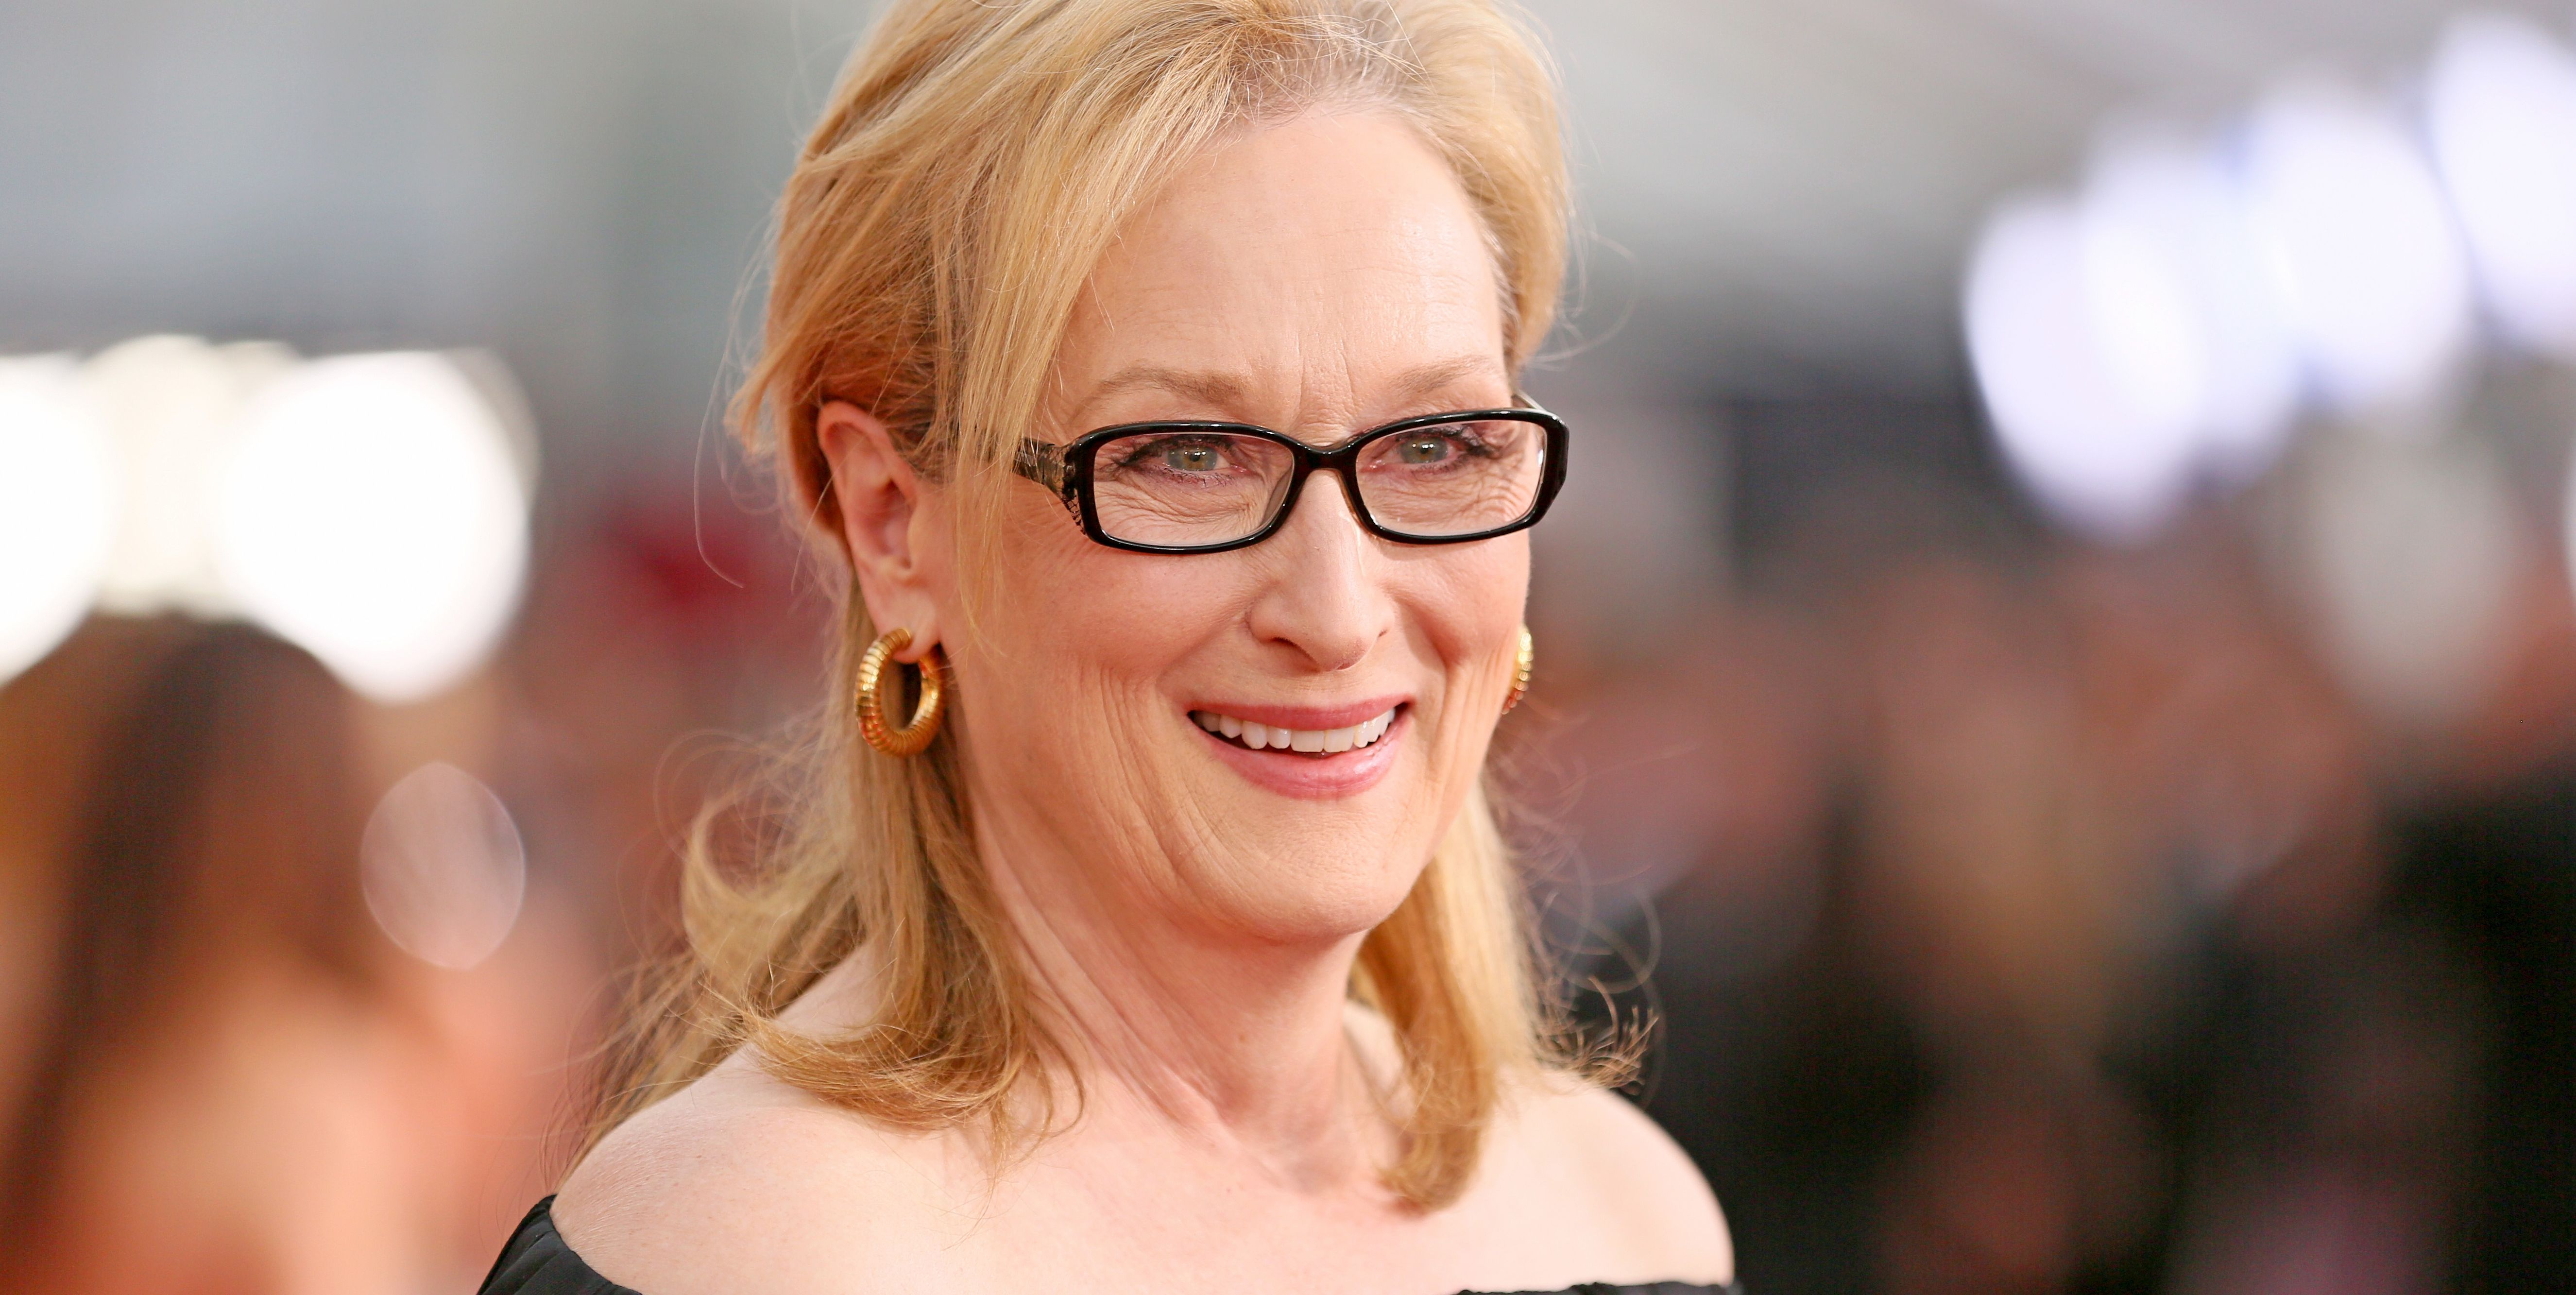 Meryl Streep Is Going to Become a Grandmother for the First Time